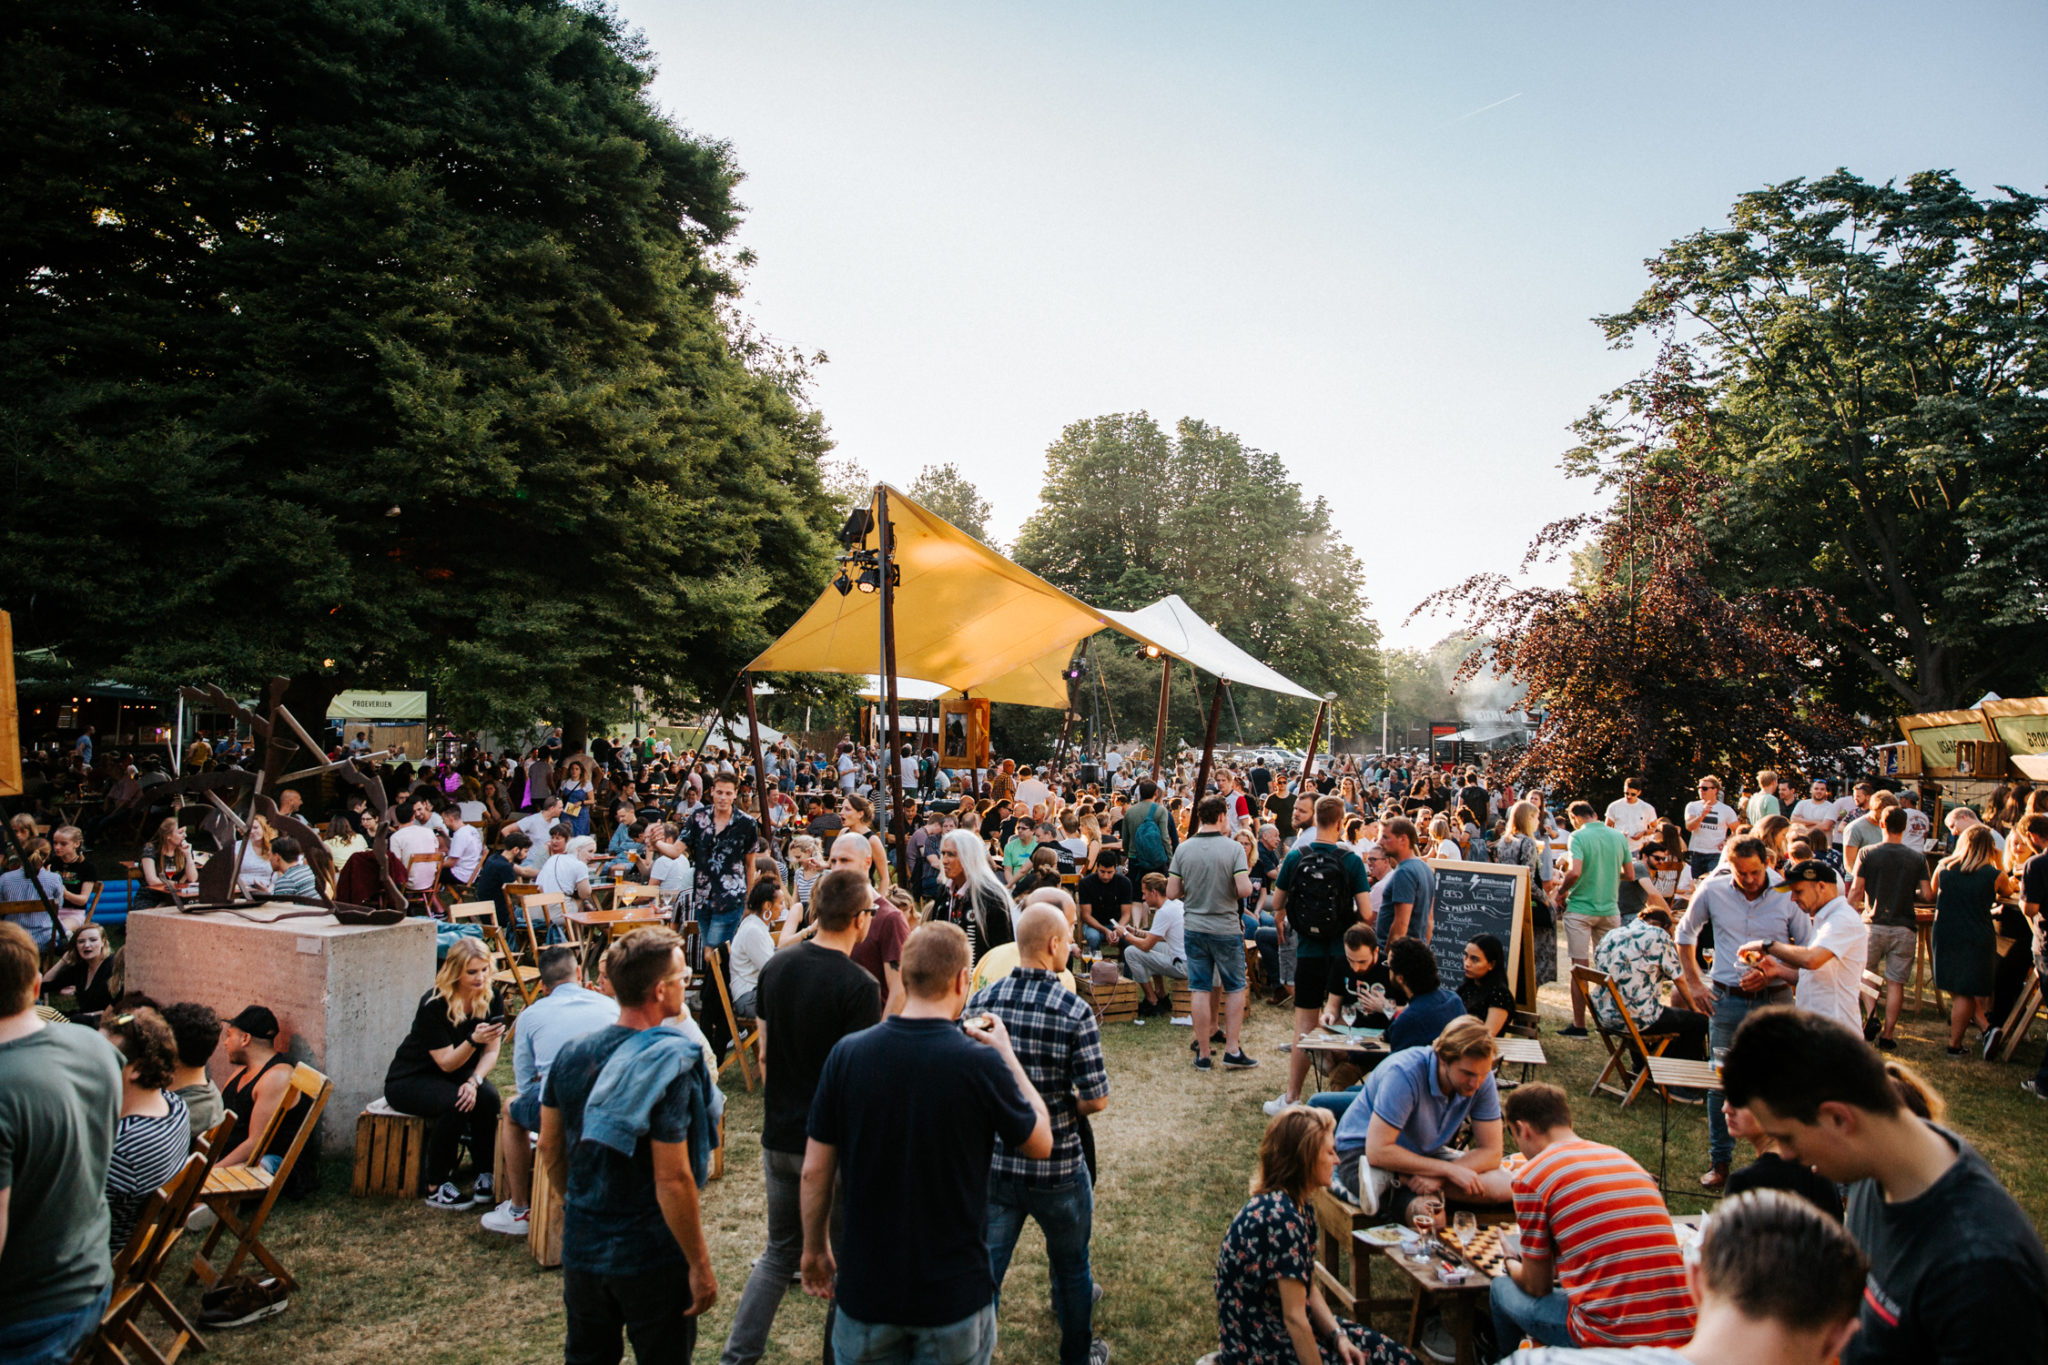 Mout Bierfestival Nijmegen 2019, Nijmegen by We Do © Mout Festival B.V.